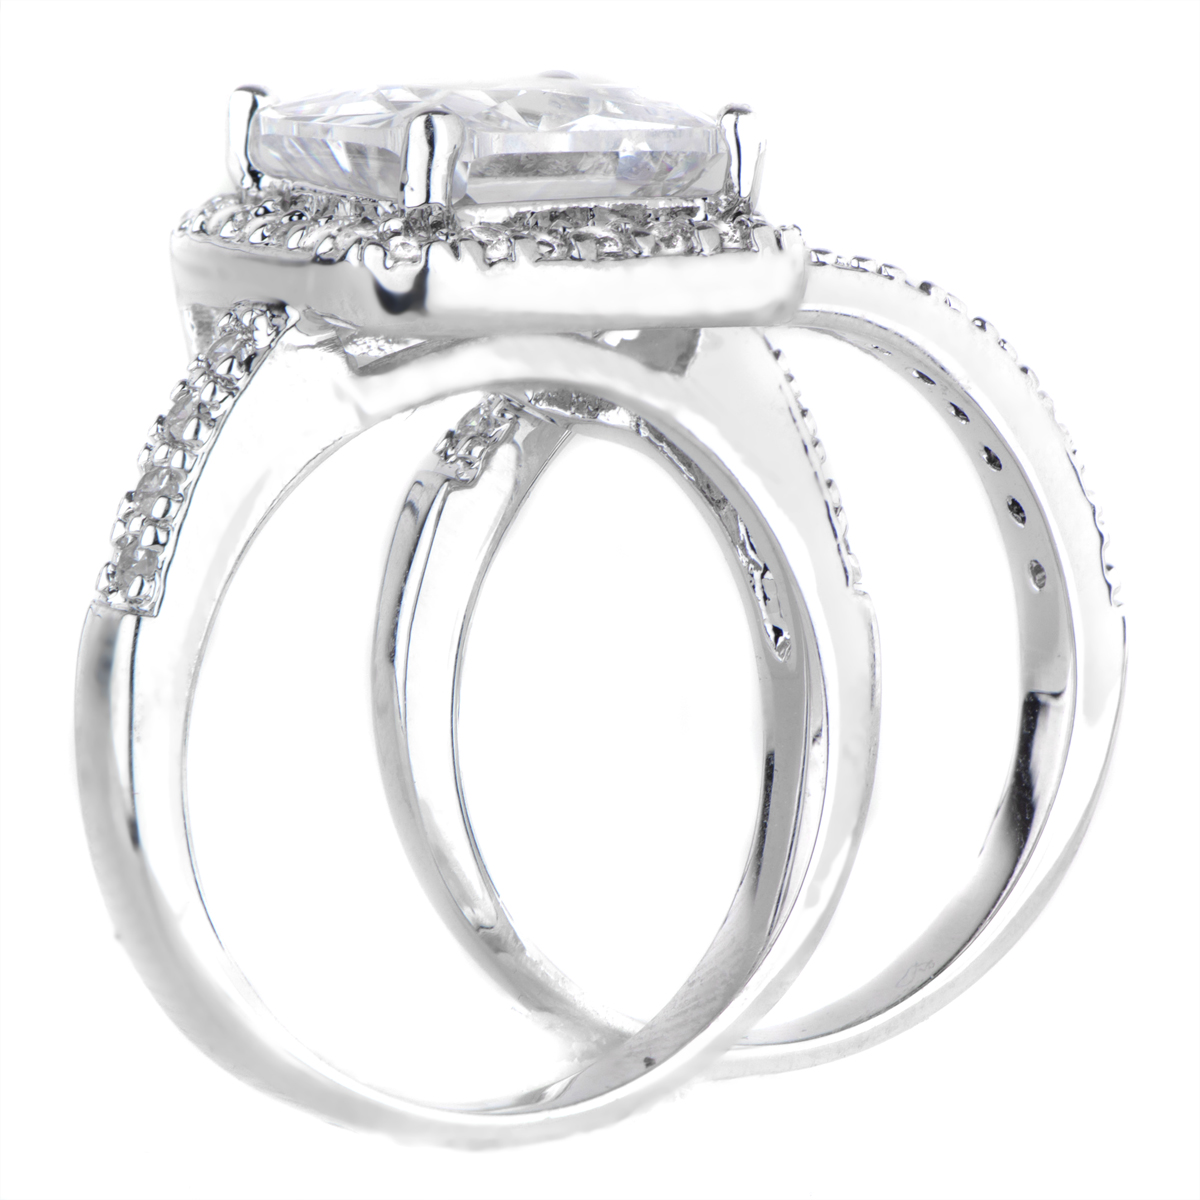 rians cubic zirconia halo princess cut wedding ring set - Halo Wedding Ring Set